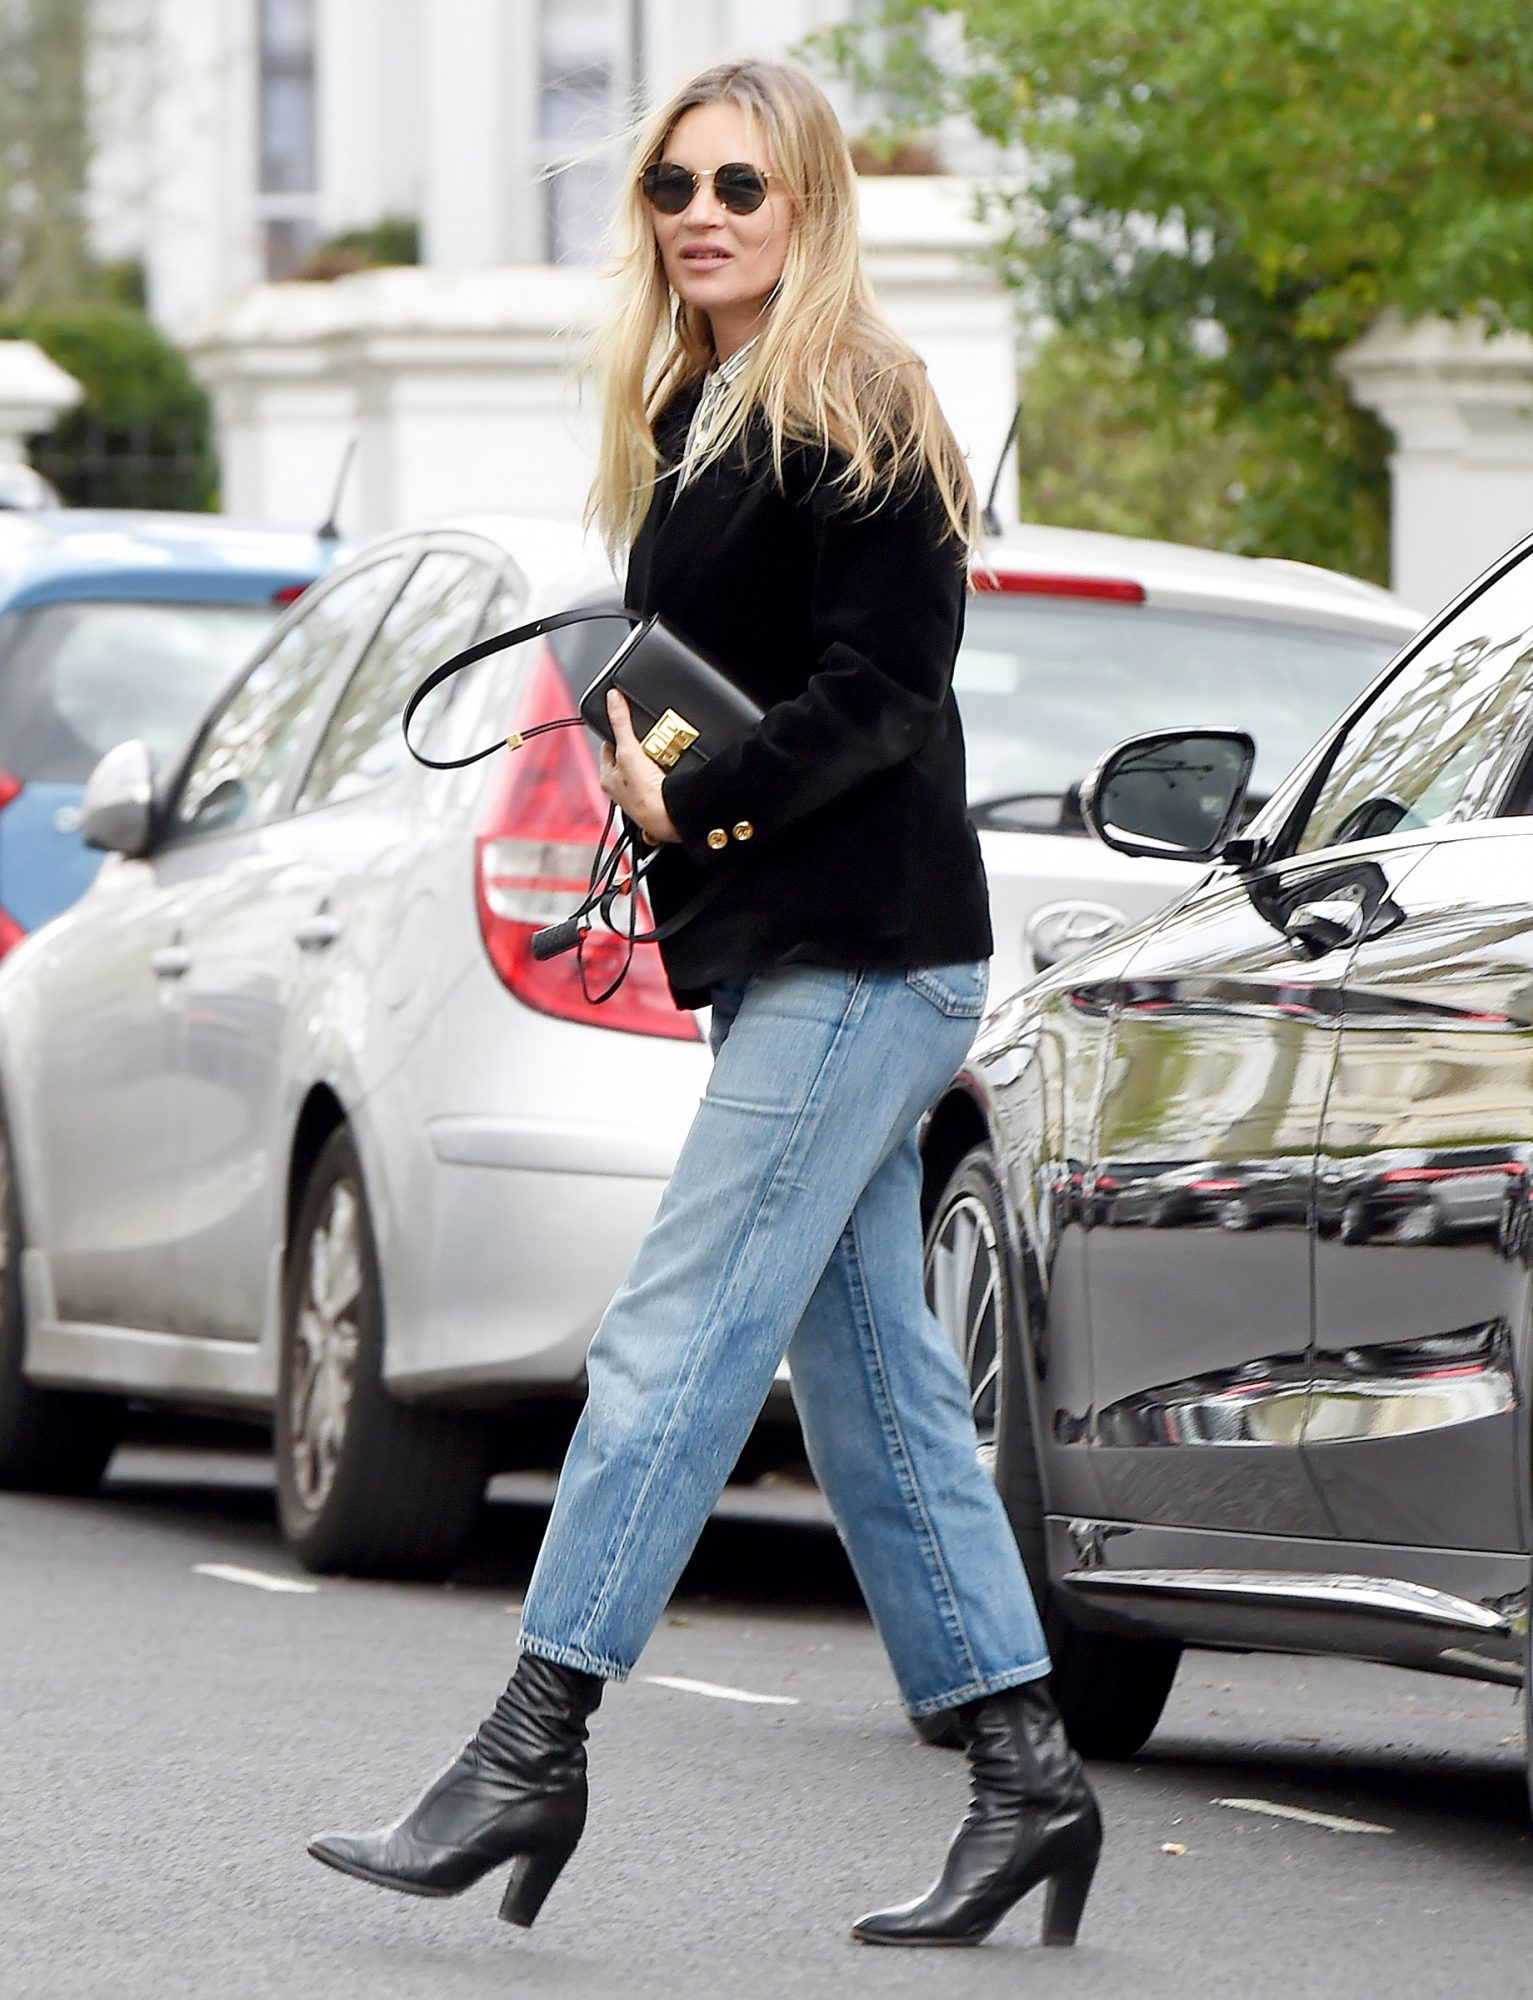 Kate Moss is Pictured Stepping Out in London.